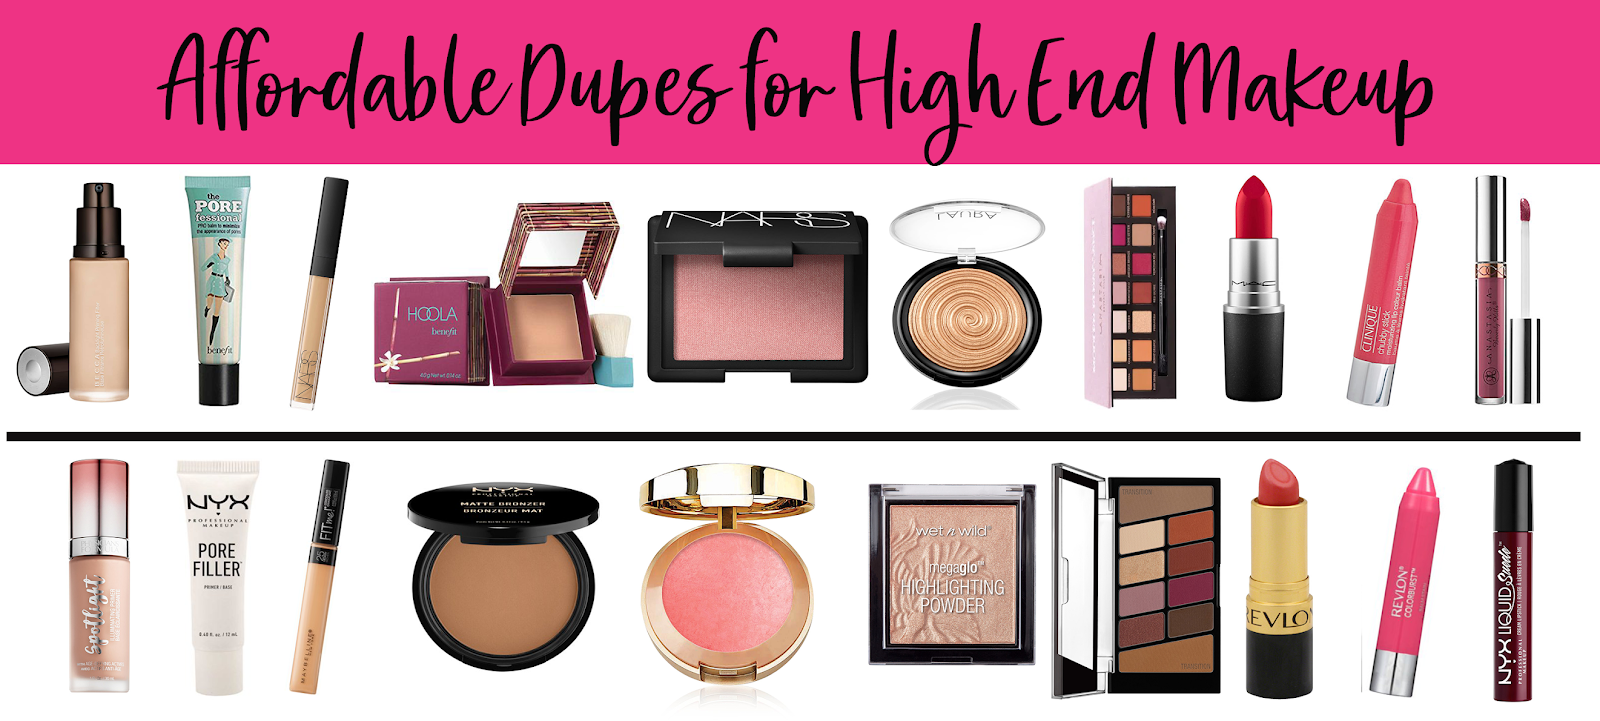 cc5837a0c Best Drugstore Dupes for High End Make Up